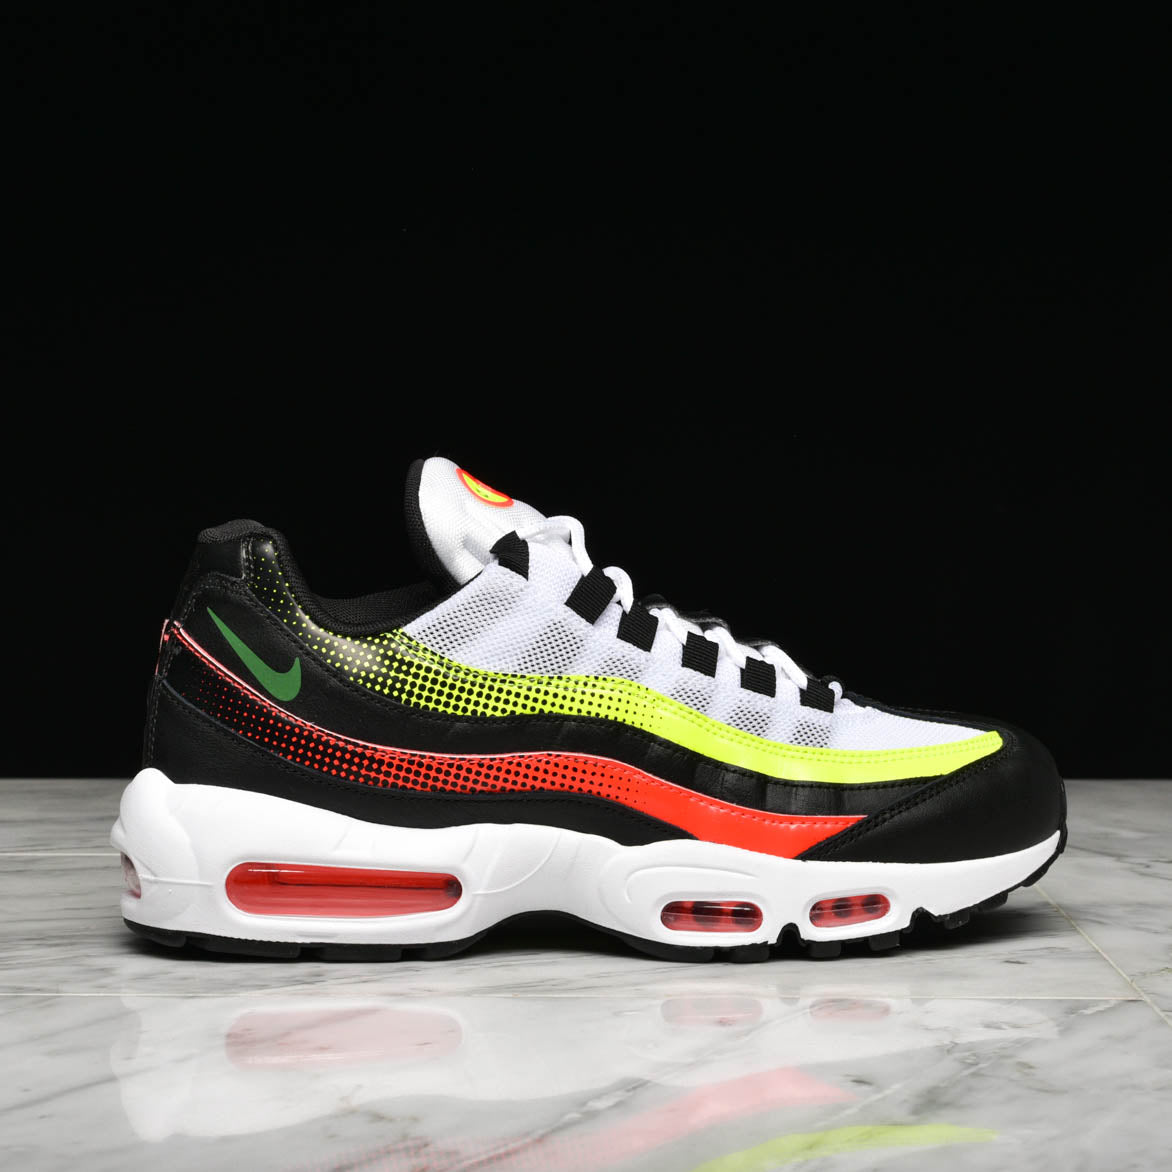 buy online 1231b e3055 AIR MAX 95 SE - BLACK   BRIGHT CRIMSON   VOLT   lapstoneandhammer.com